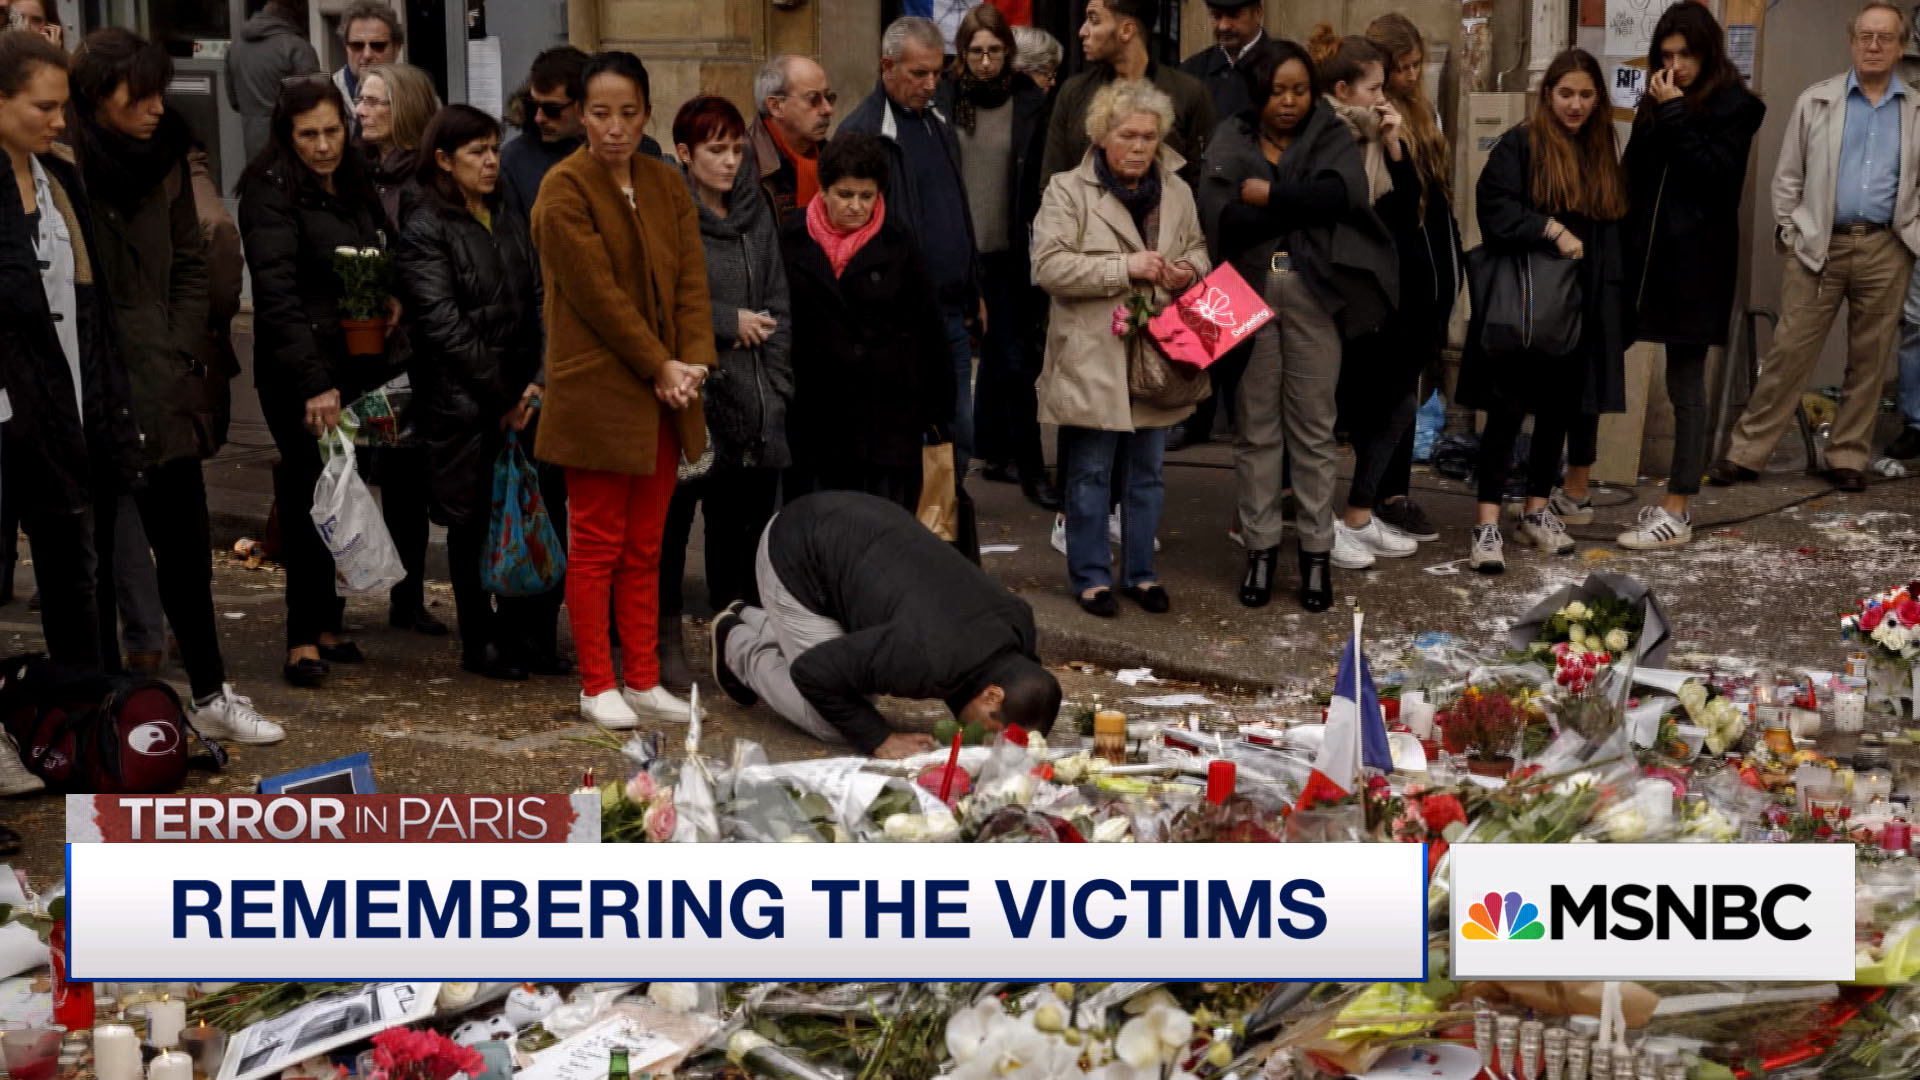 More about Paris victims who died